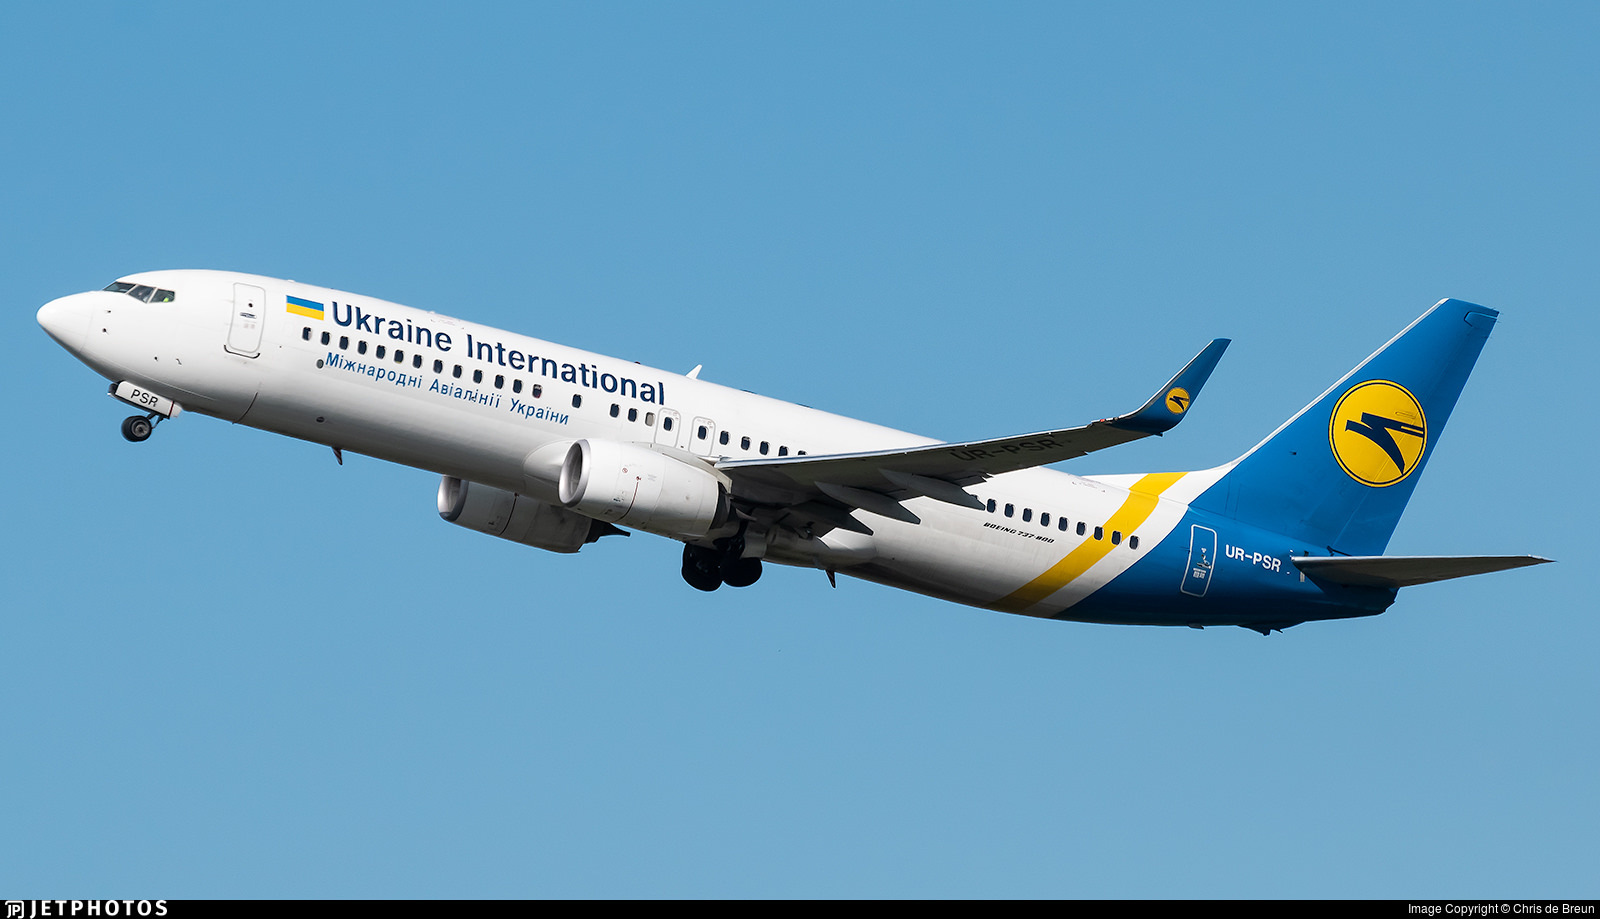 Ukrainian International Airlines 737 UR-PSR